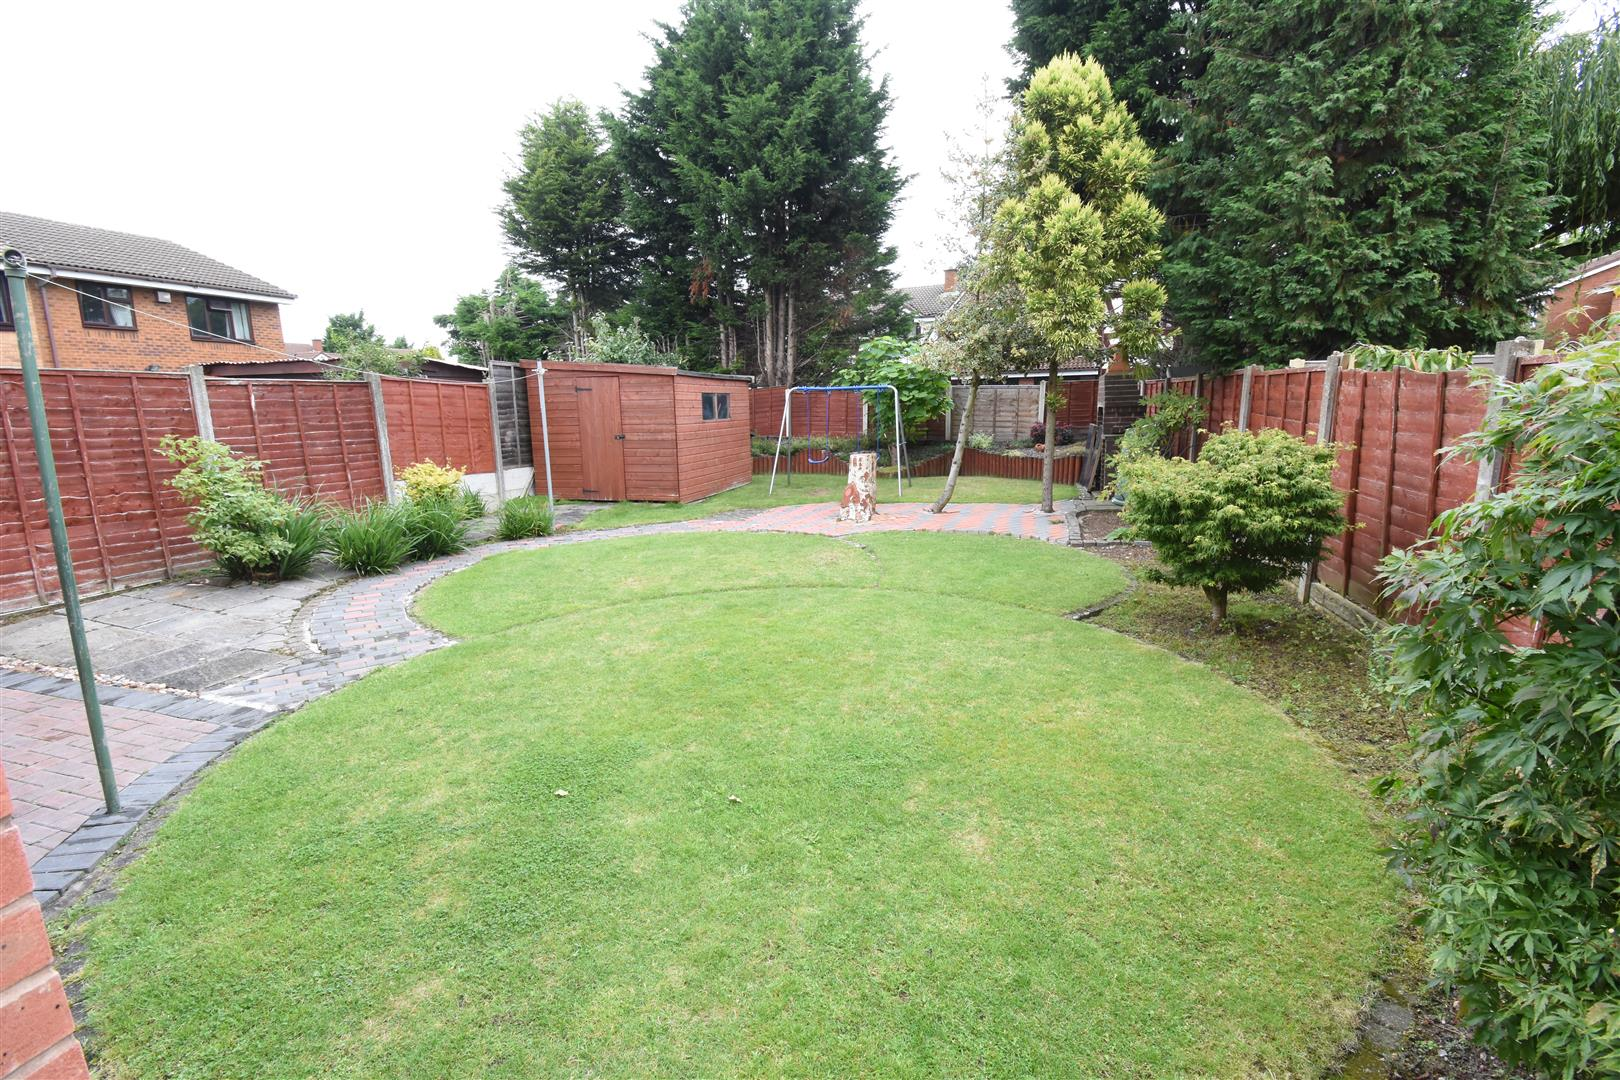 5 bed house for sale in Johnson Close, Ward End, Birmingham 15